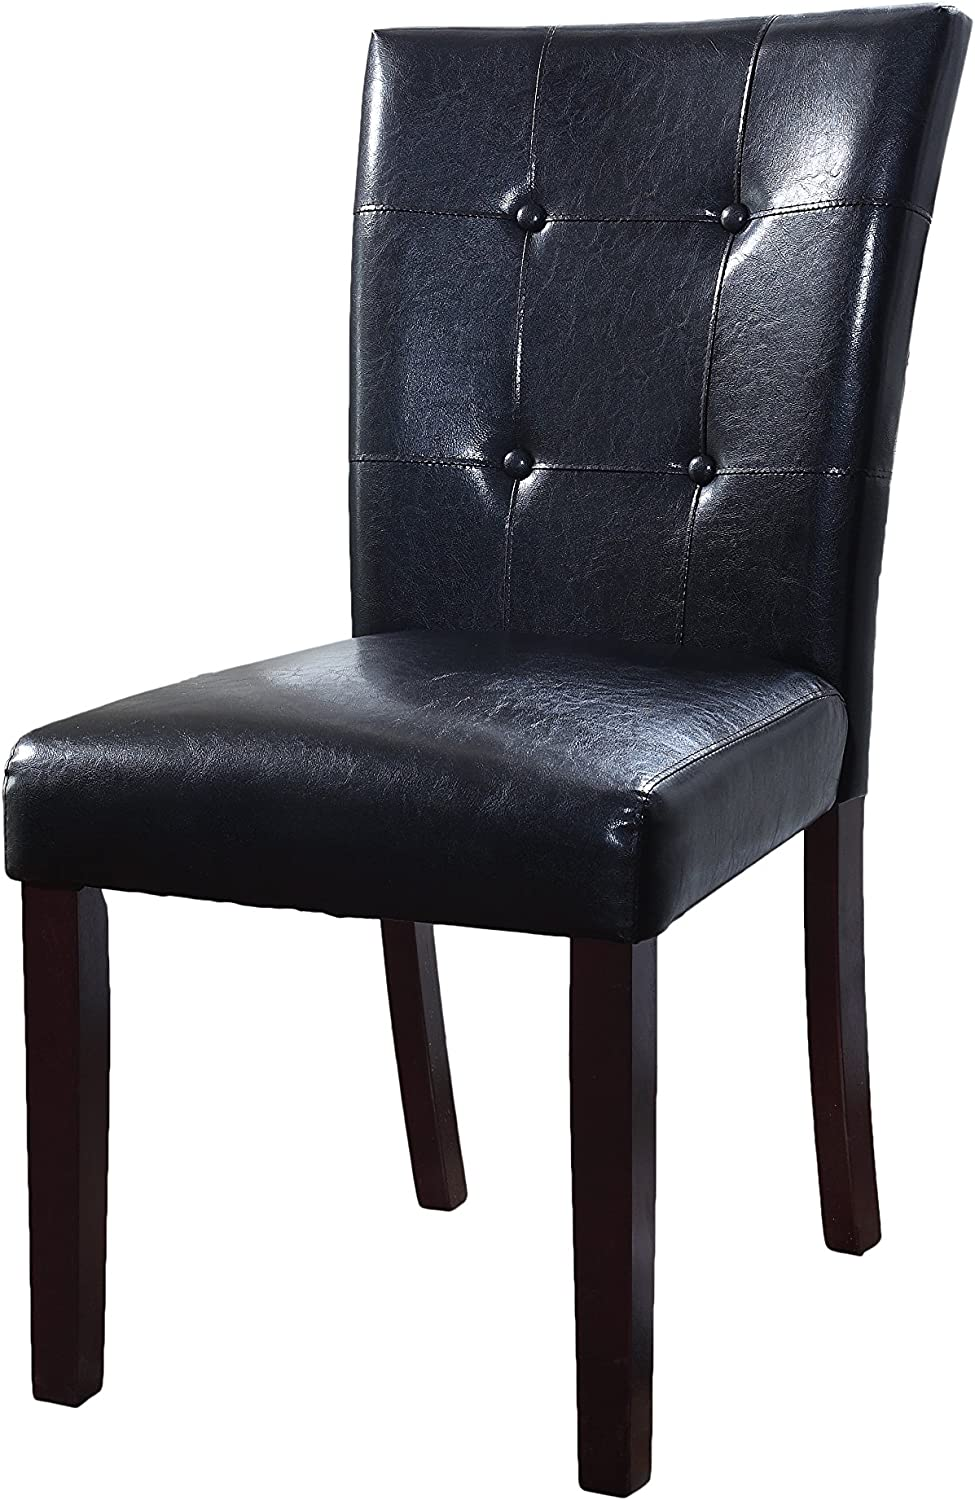 Best Master Furniture Upholstered Tufted Faux Leather Dining Side Chair - Set of 2, Black